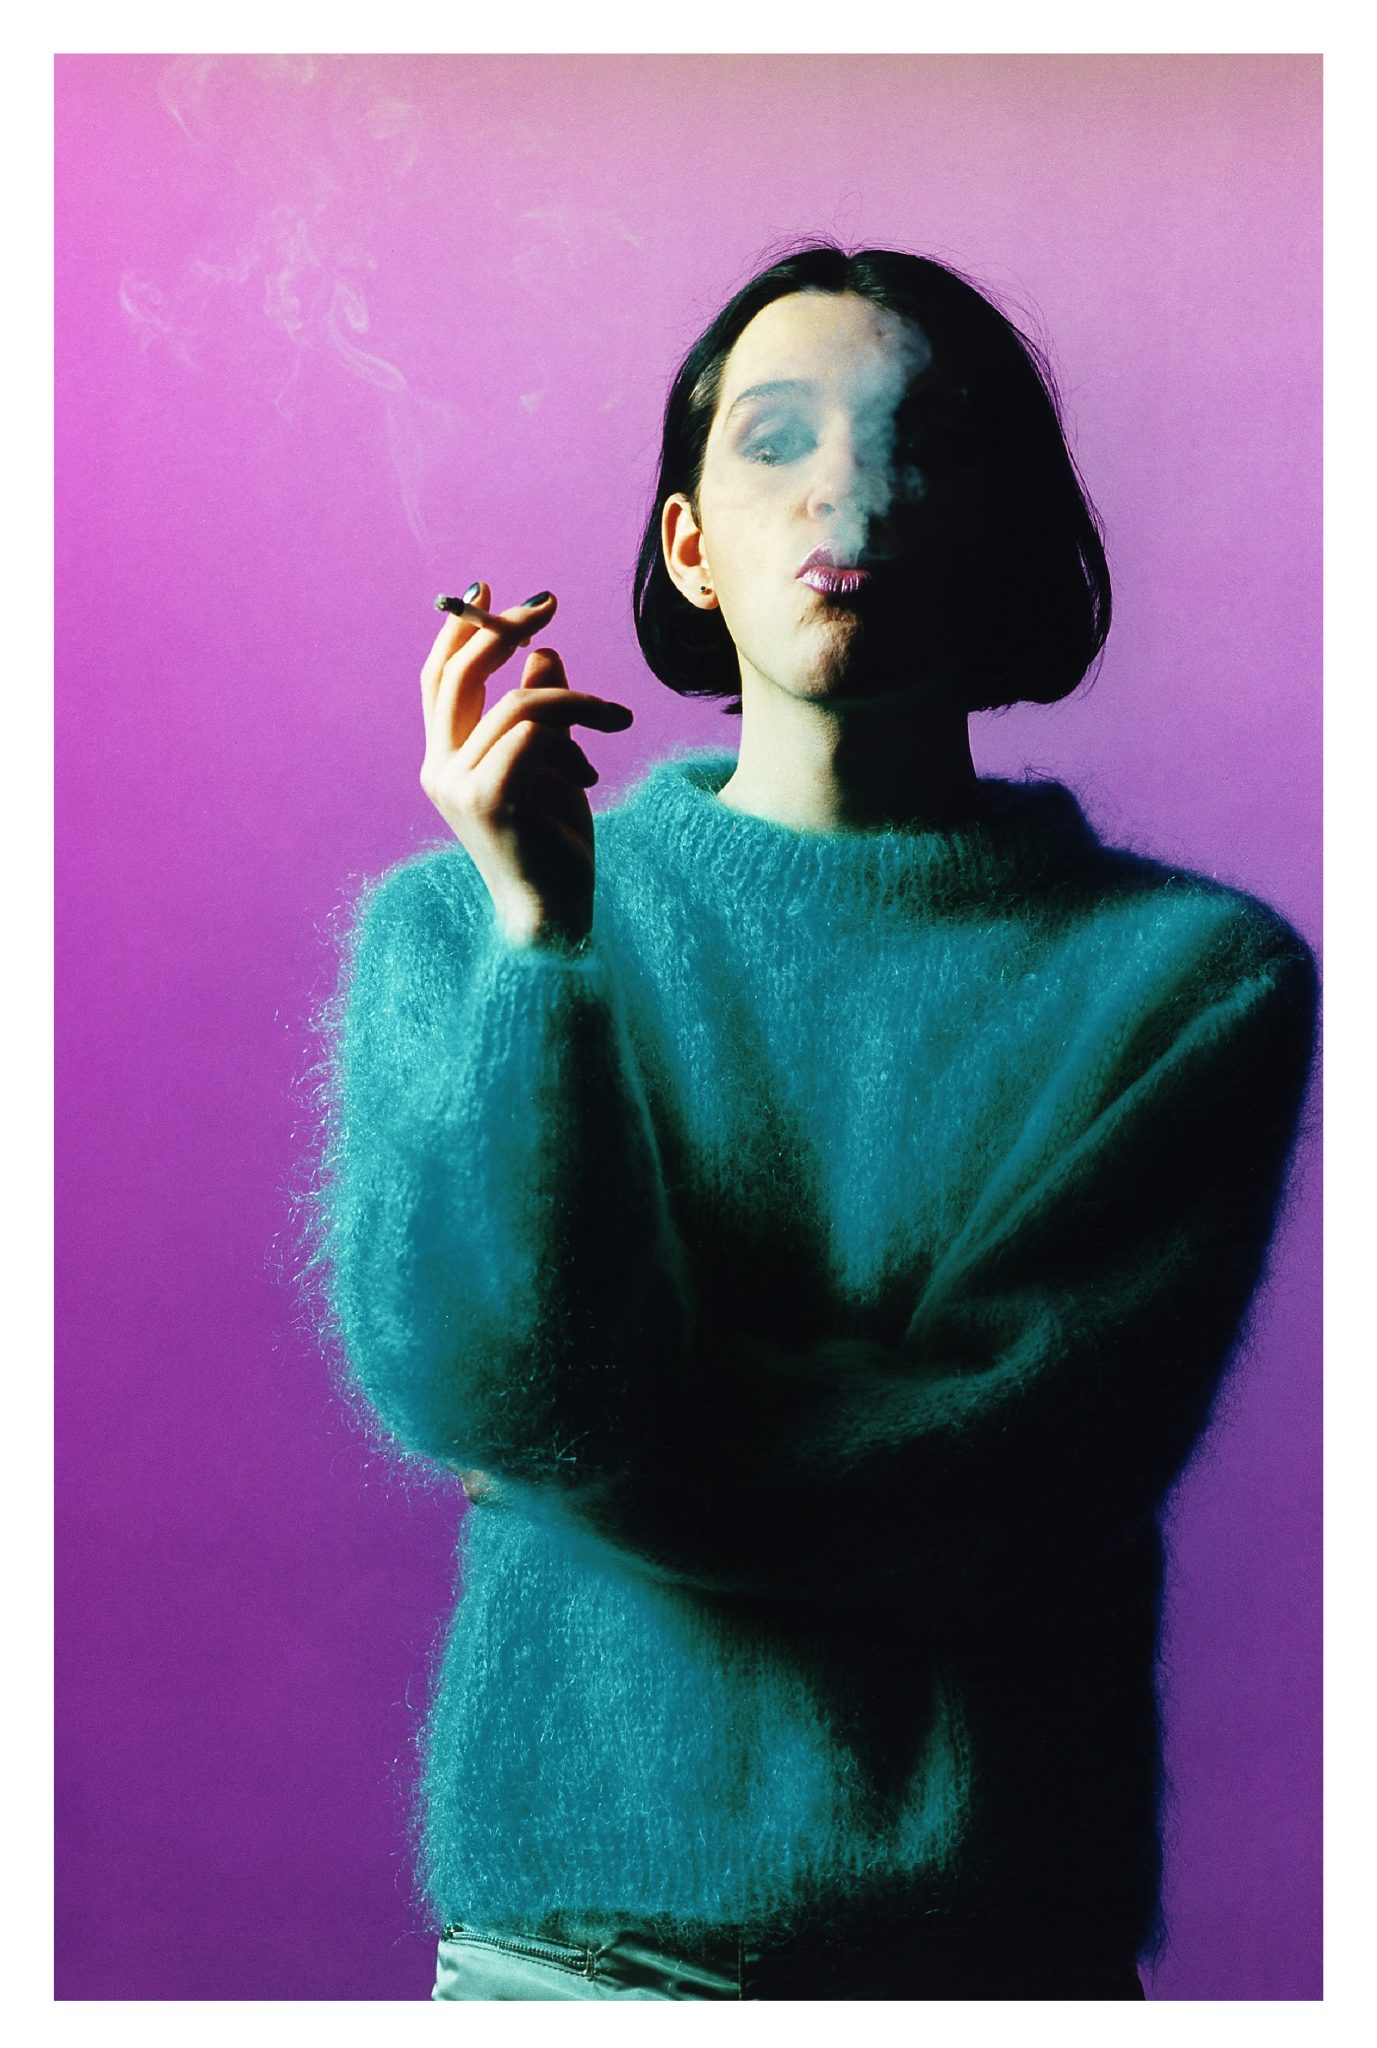 PLACEBO - Life's What You Make It (Official Video)